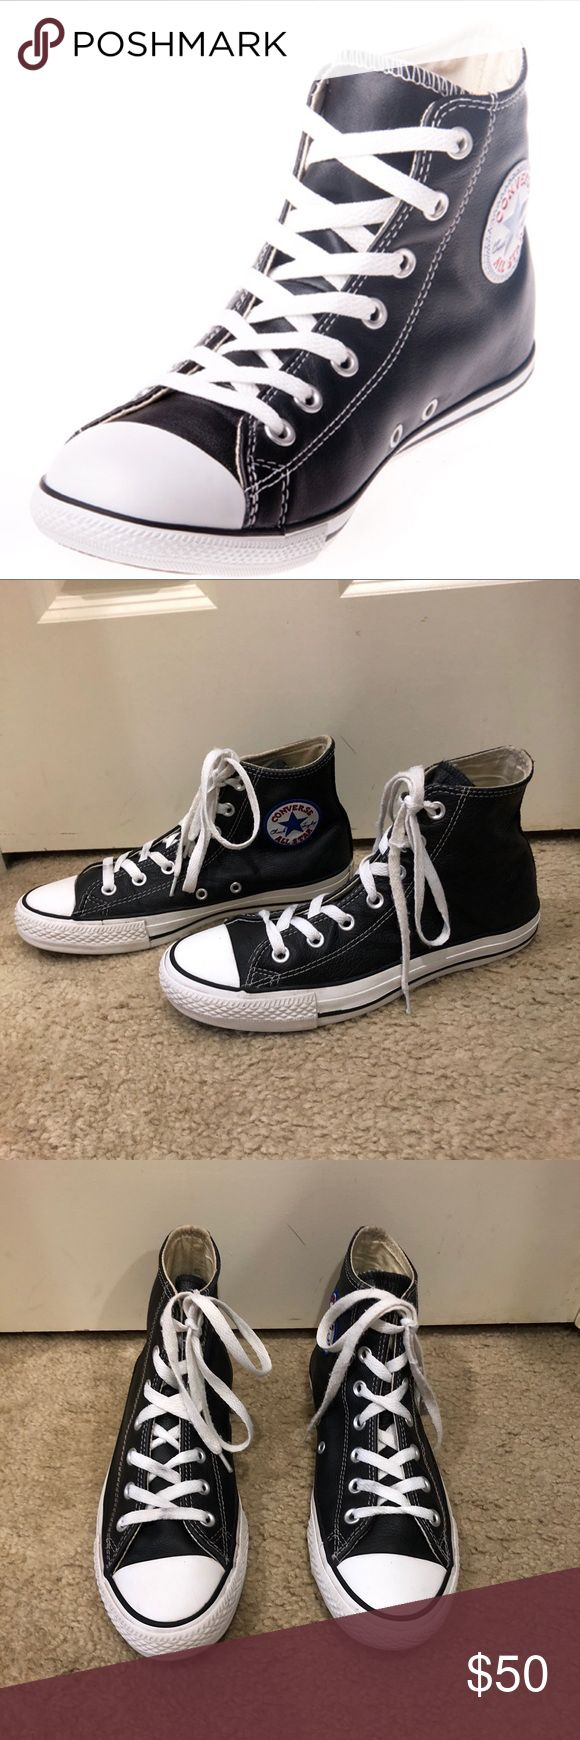 Converse Chuck Taylor leather slim fit high tops Converse Chuck Taylor leather slim fit shoes! Slim fit All leather Hi tops Perfect for fall and winter Pre-loved in excellent condition  Thank you for looking in our closet Please feel free to check out our other listings Converse Shoes Sneakers